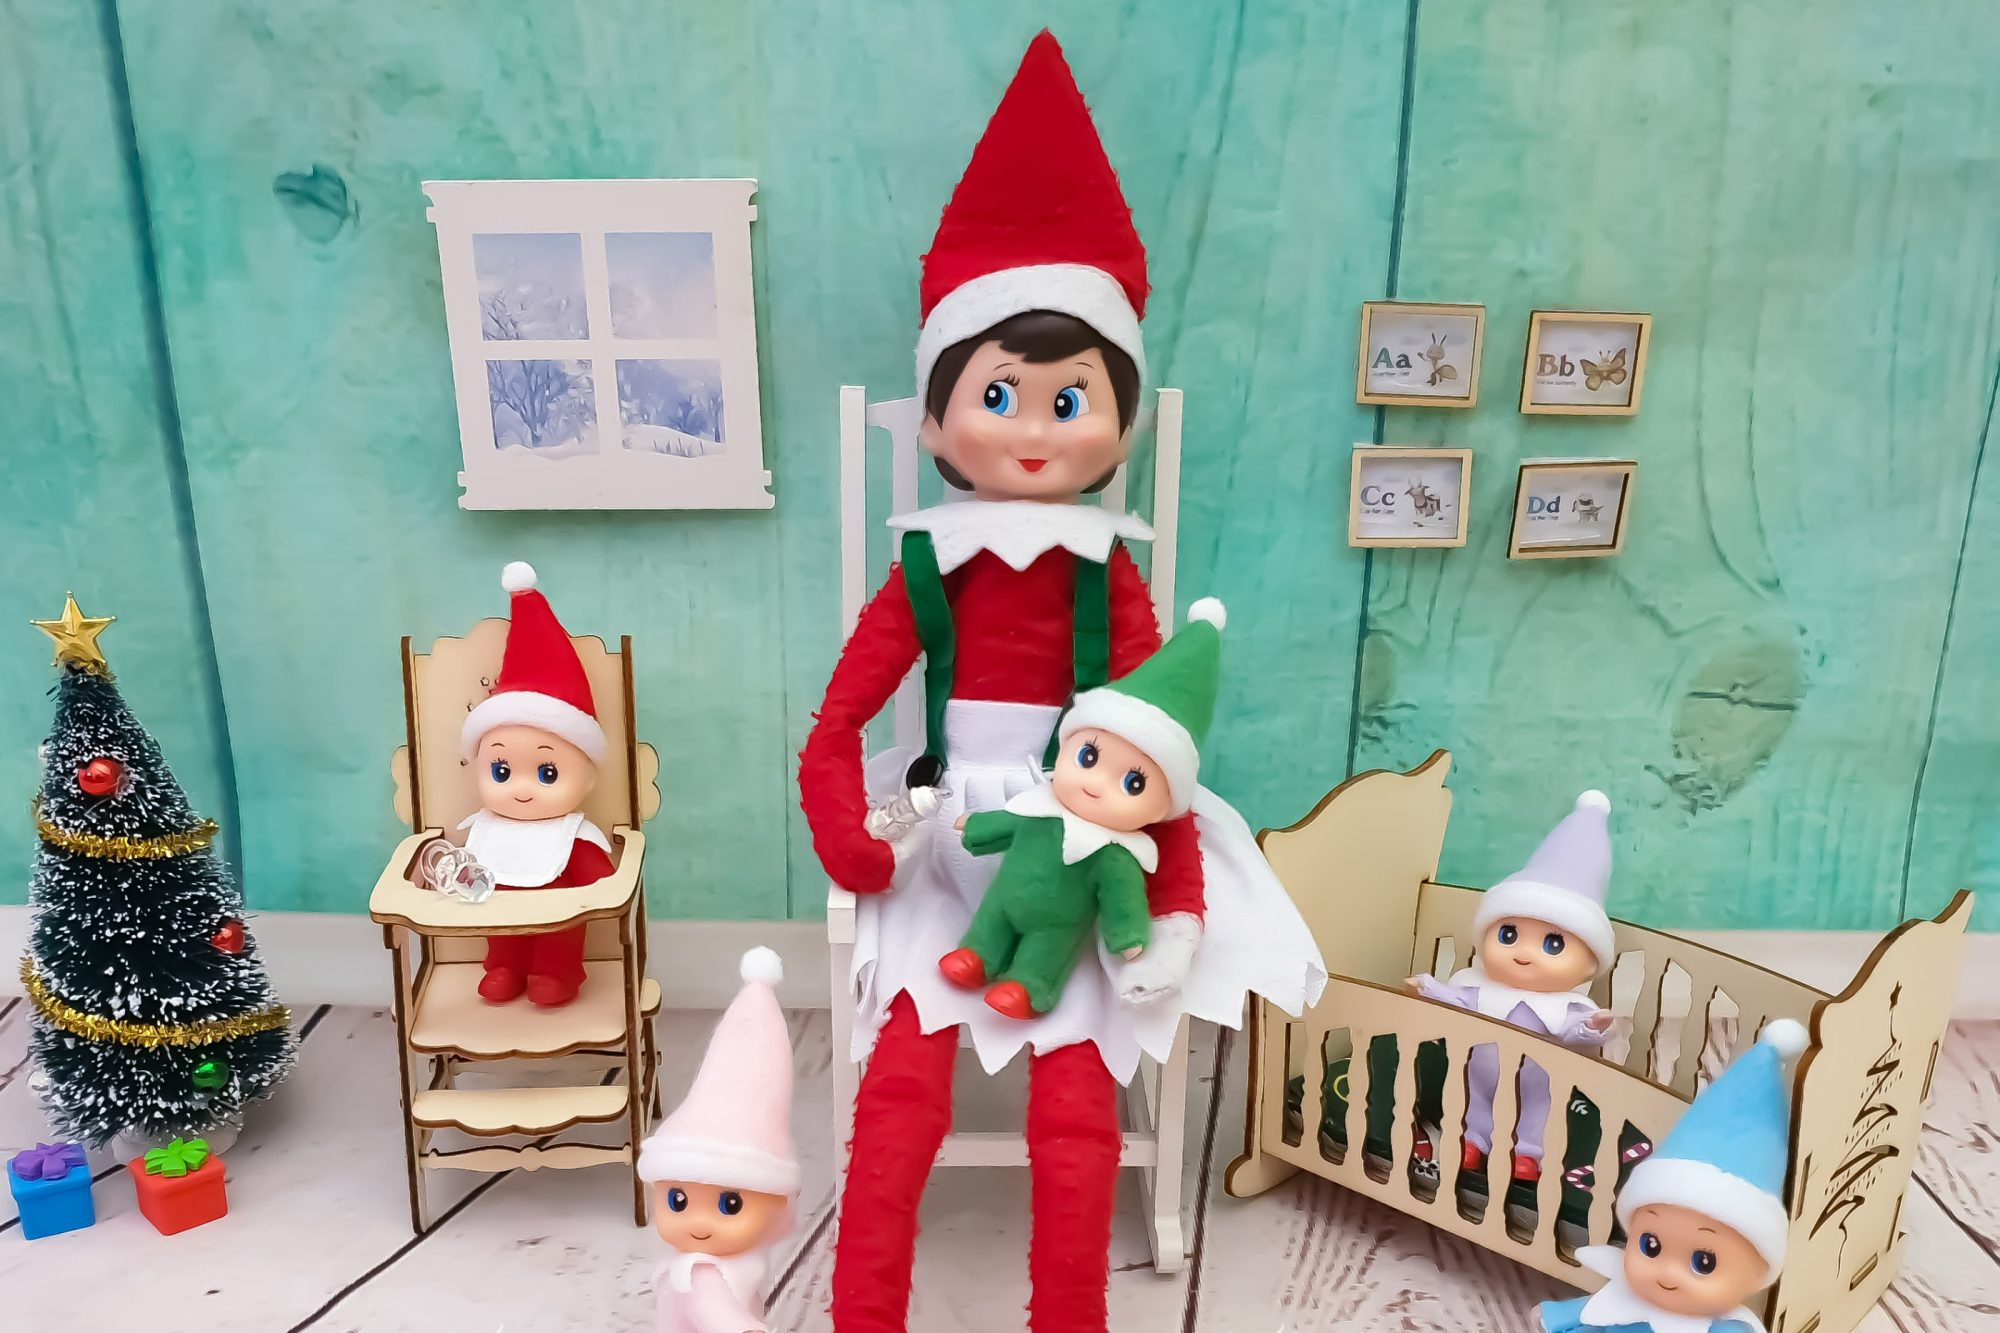 Elf on a Shelf and babies